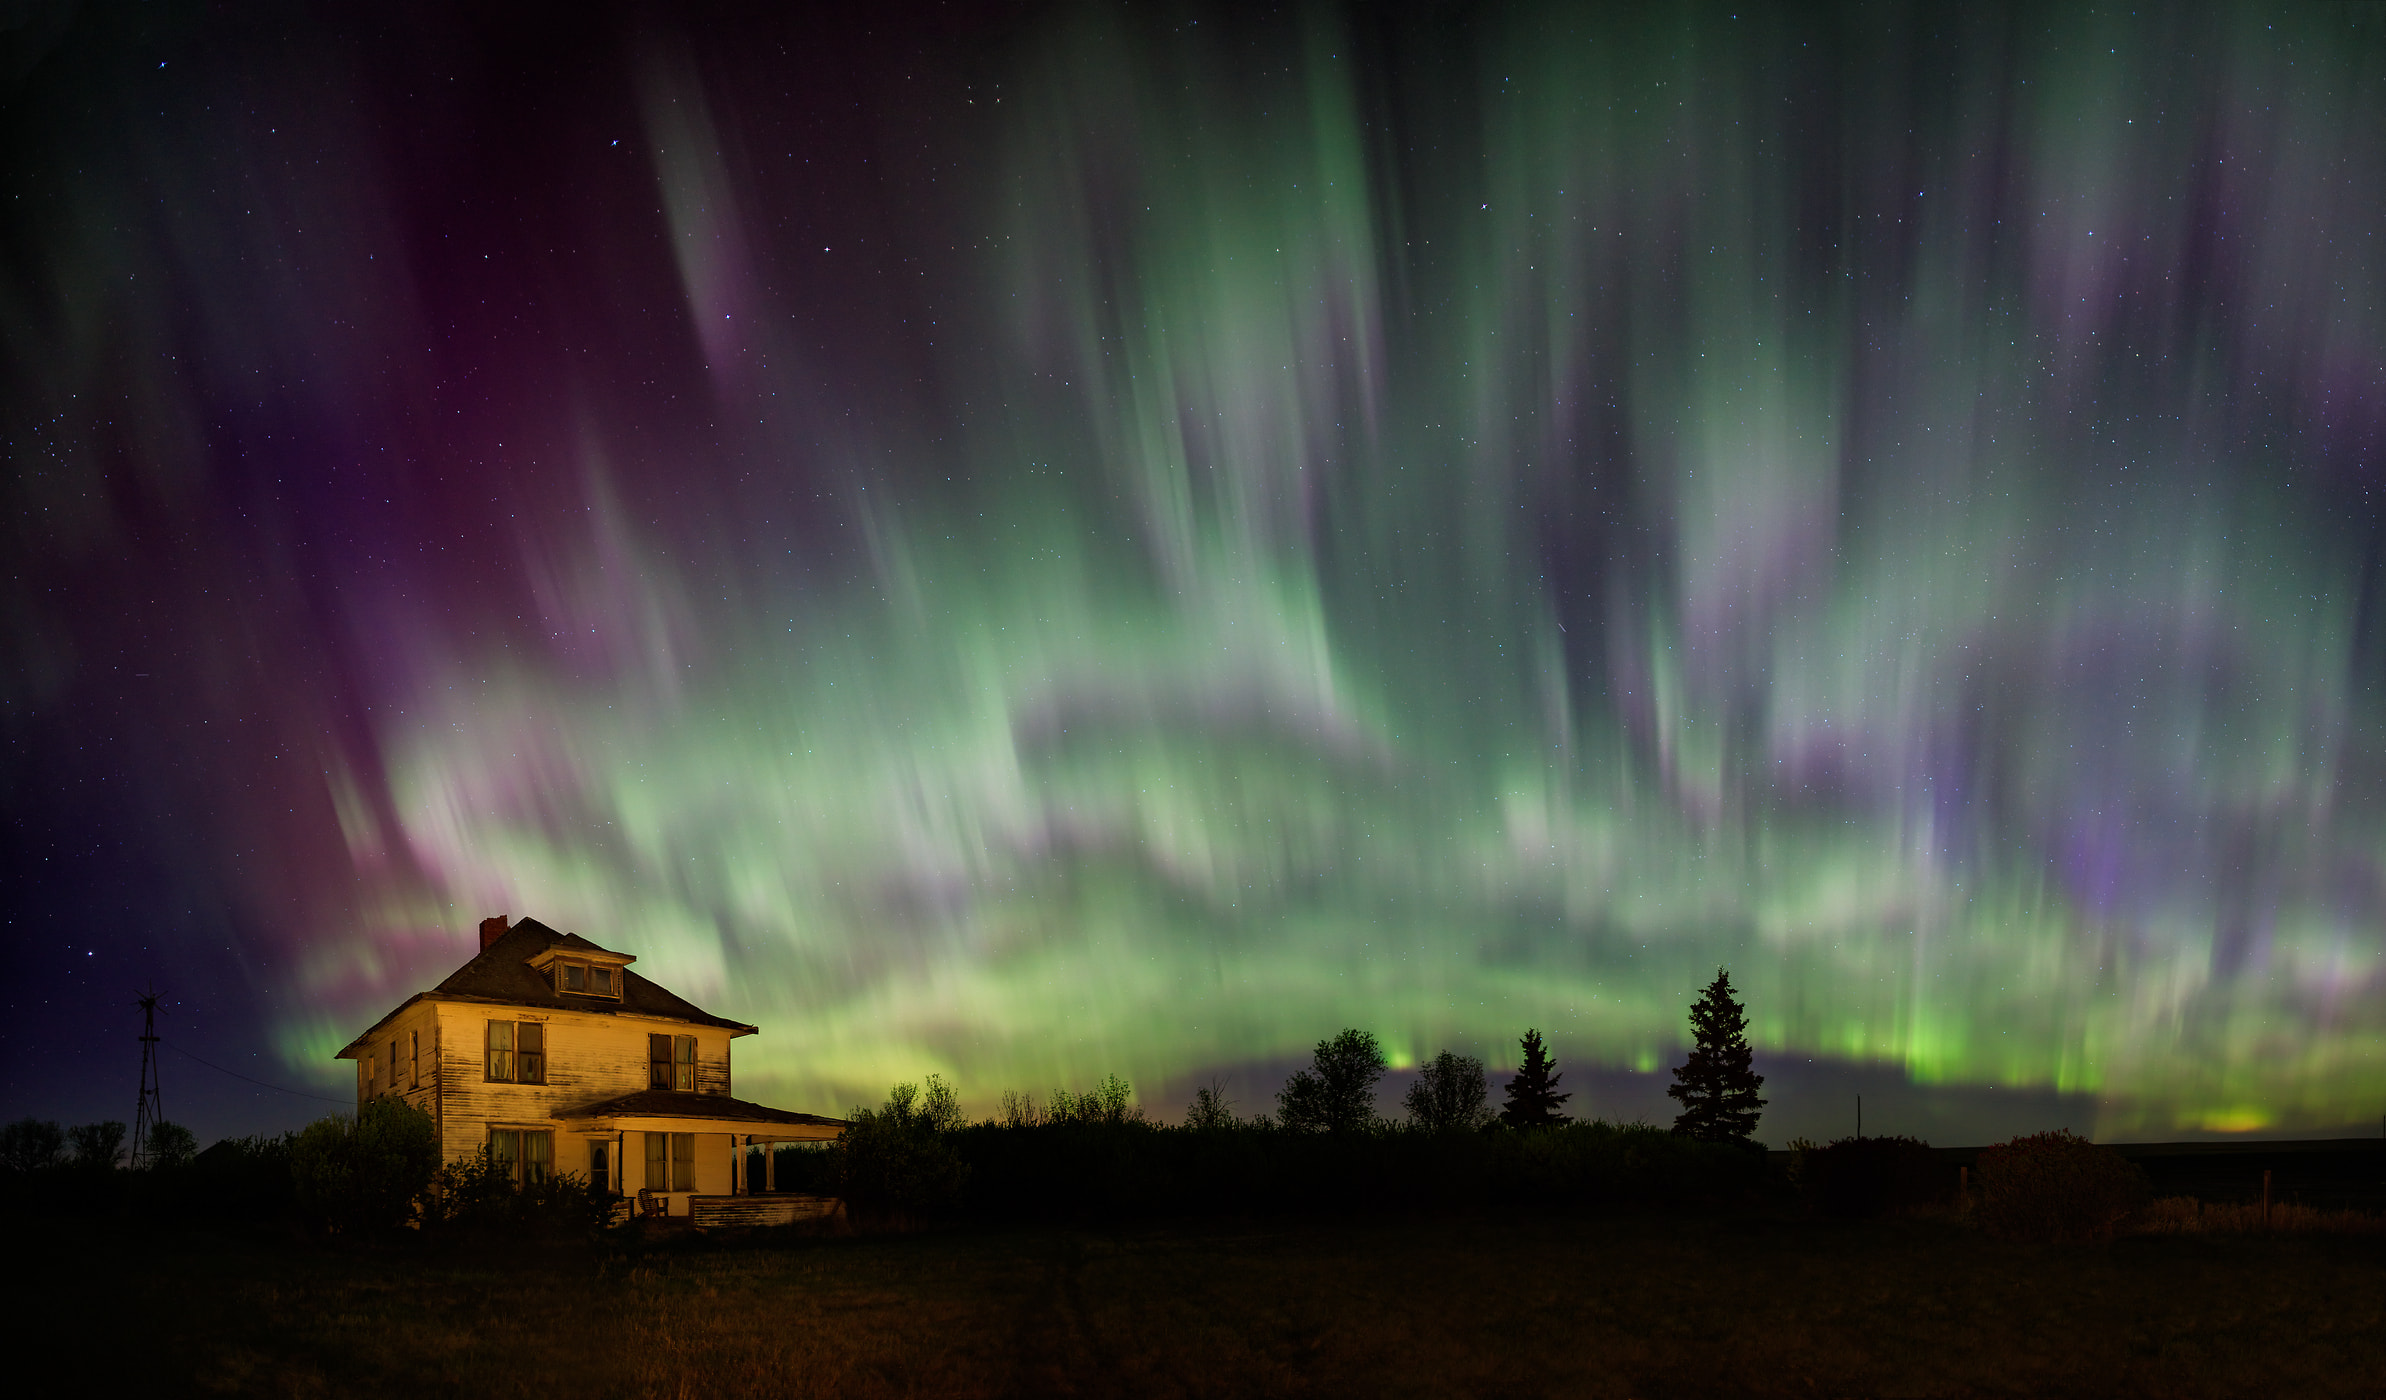 A very high resolution, large-format VAST photo of an eerie creepy abandoned house under the Aurora Borealis Northern Lights; fine art landscape photo created by Scott Dimond in Alberta, Canada